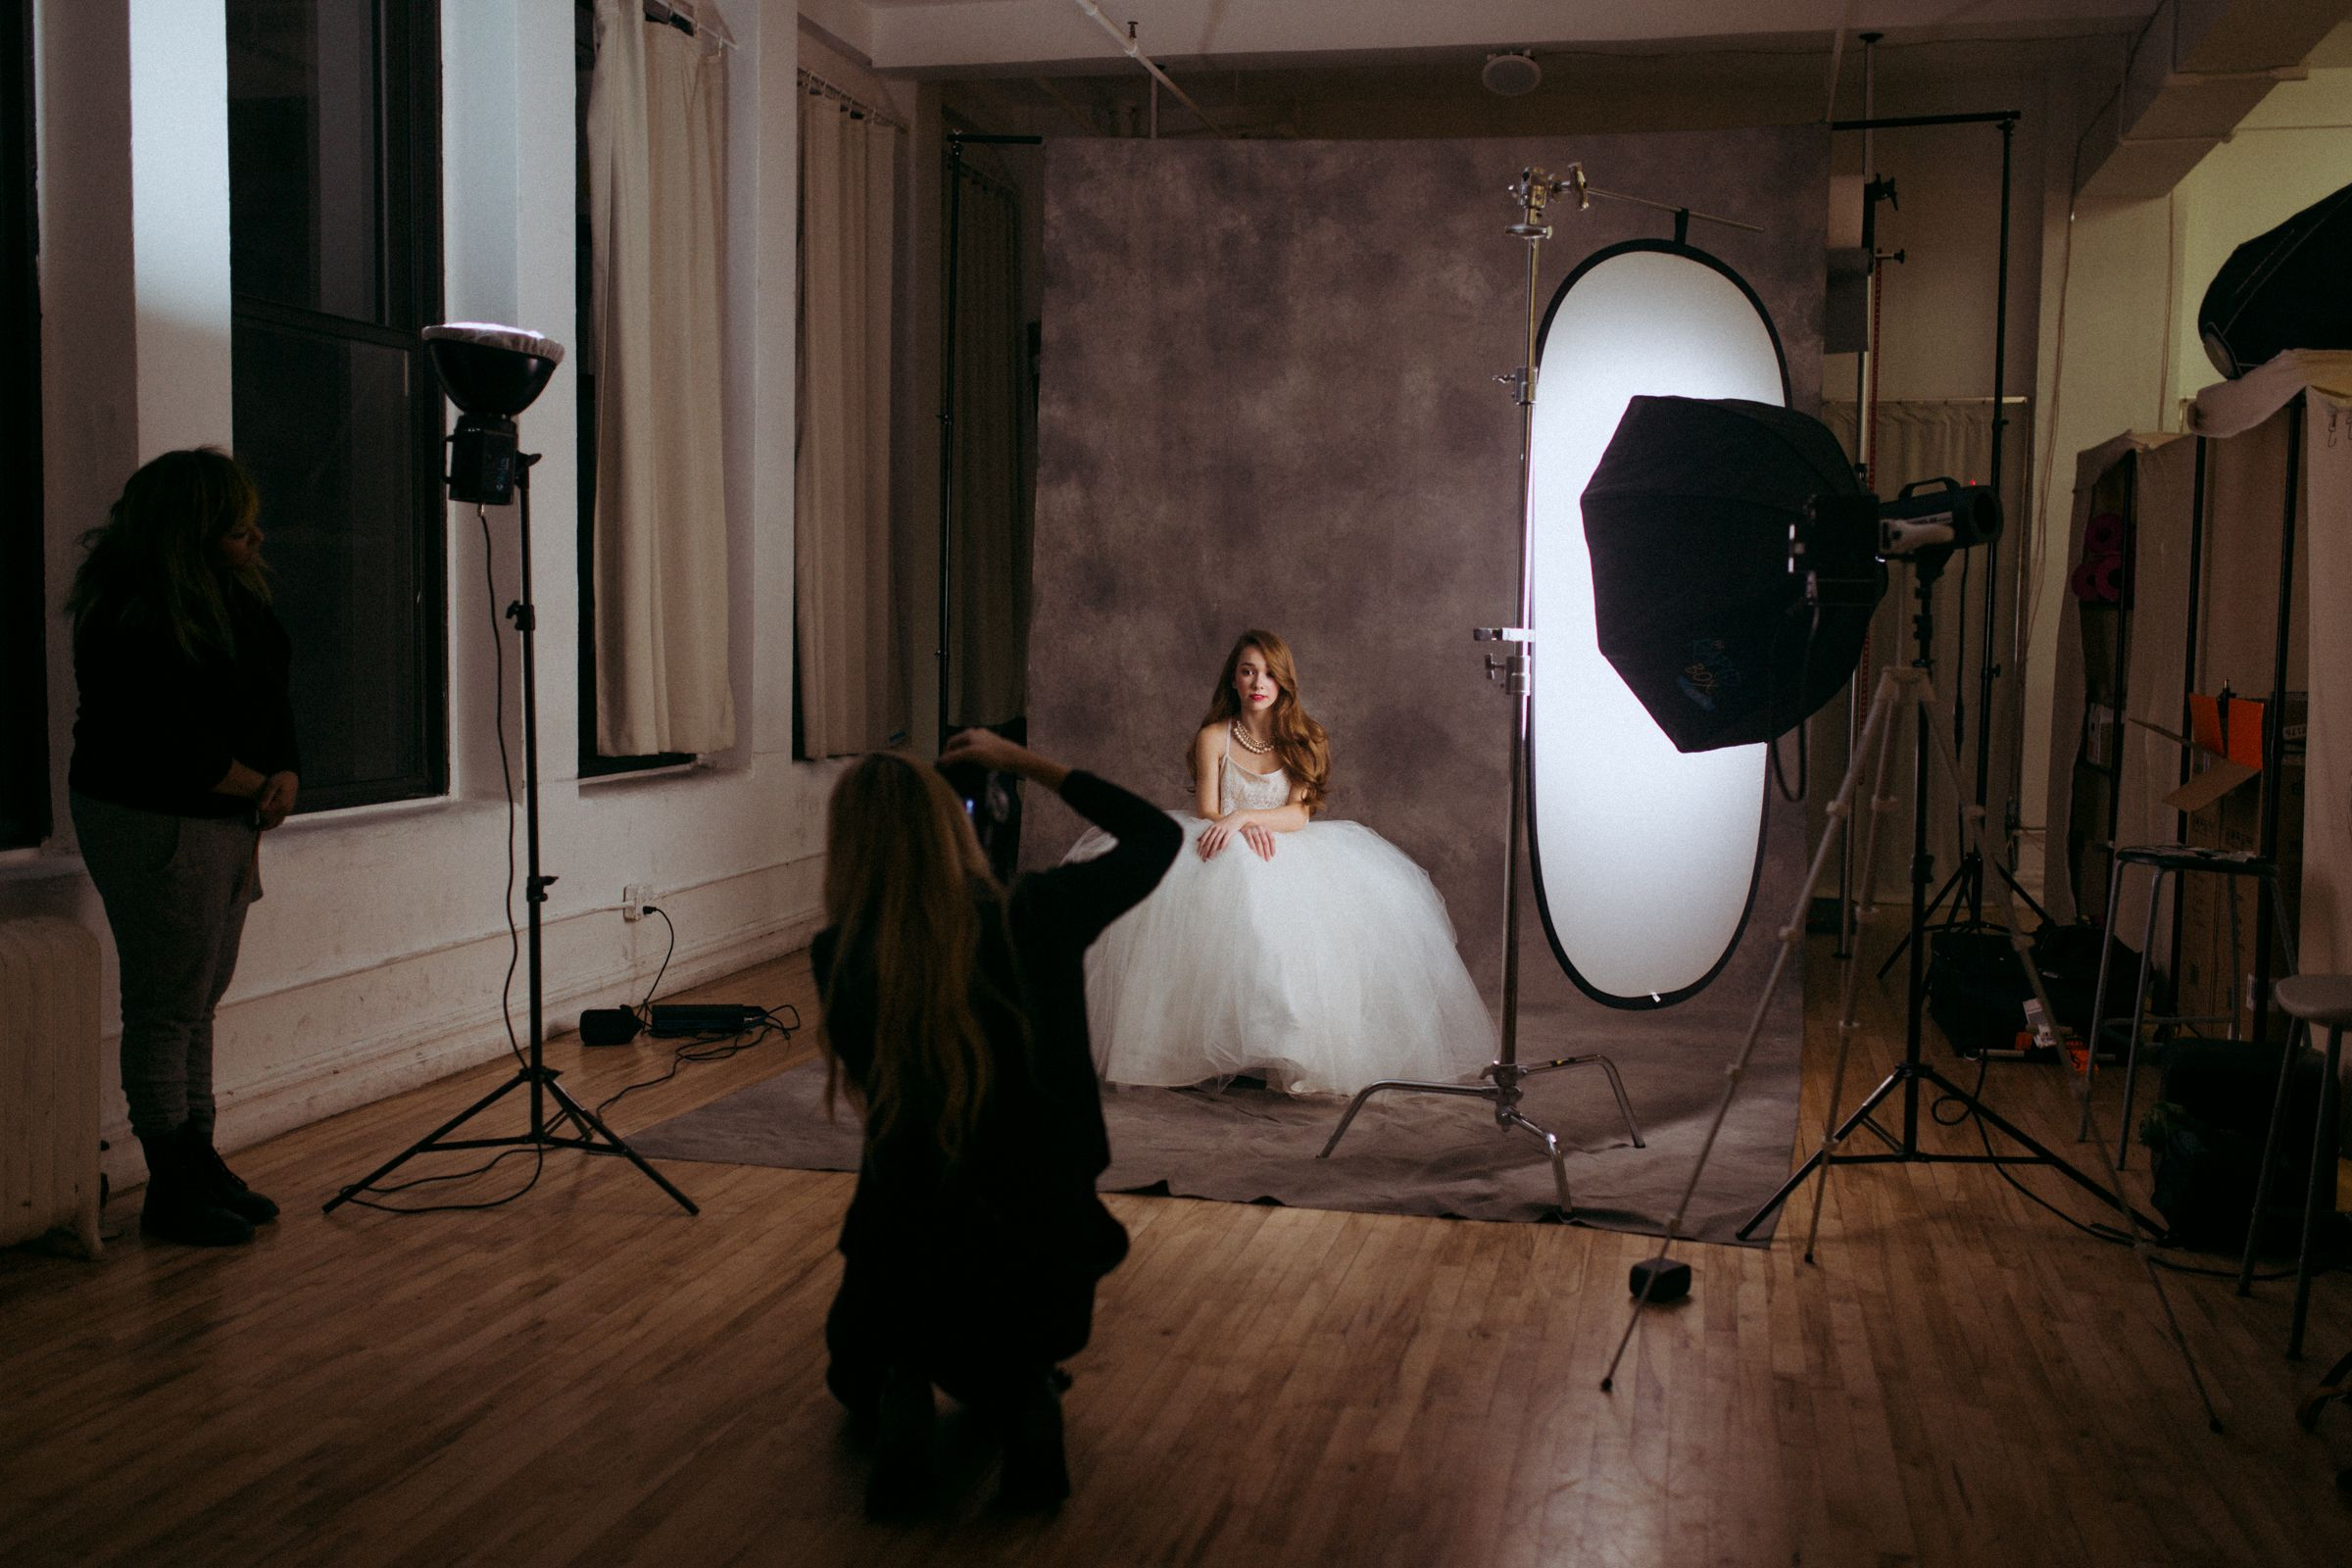 Wedding Photography Lighting Setup: Behind The Scenes With Holly Taylor